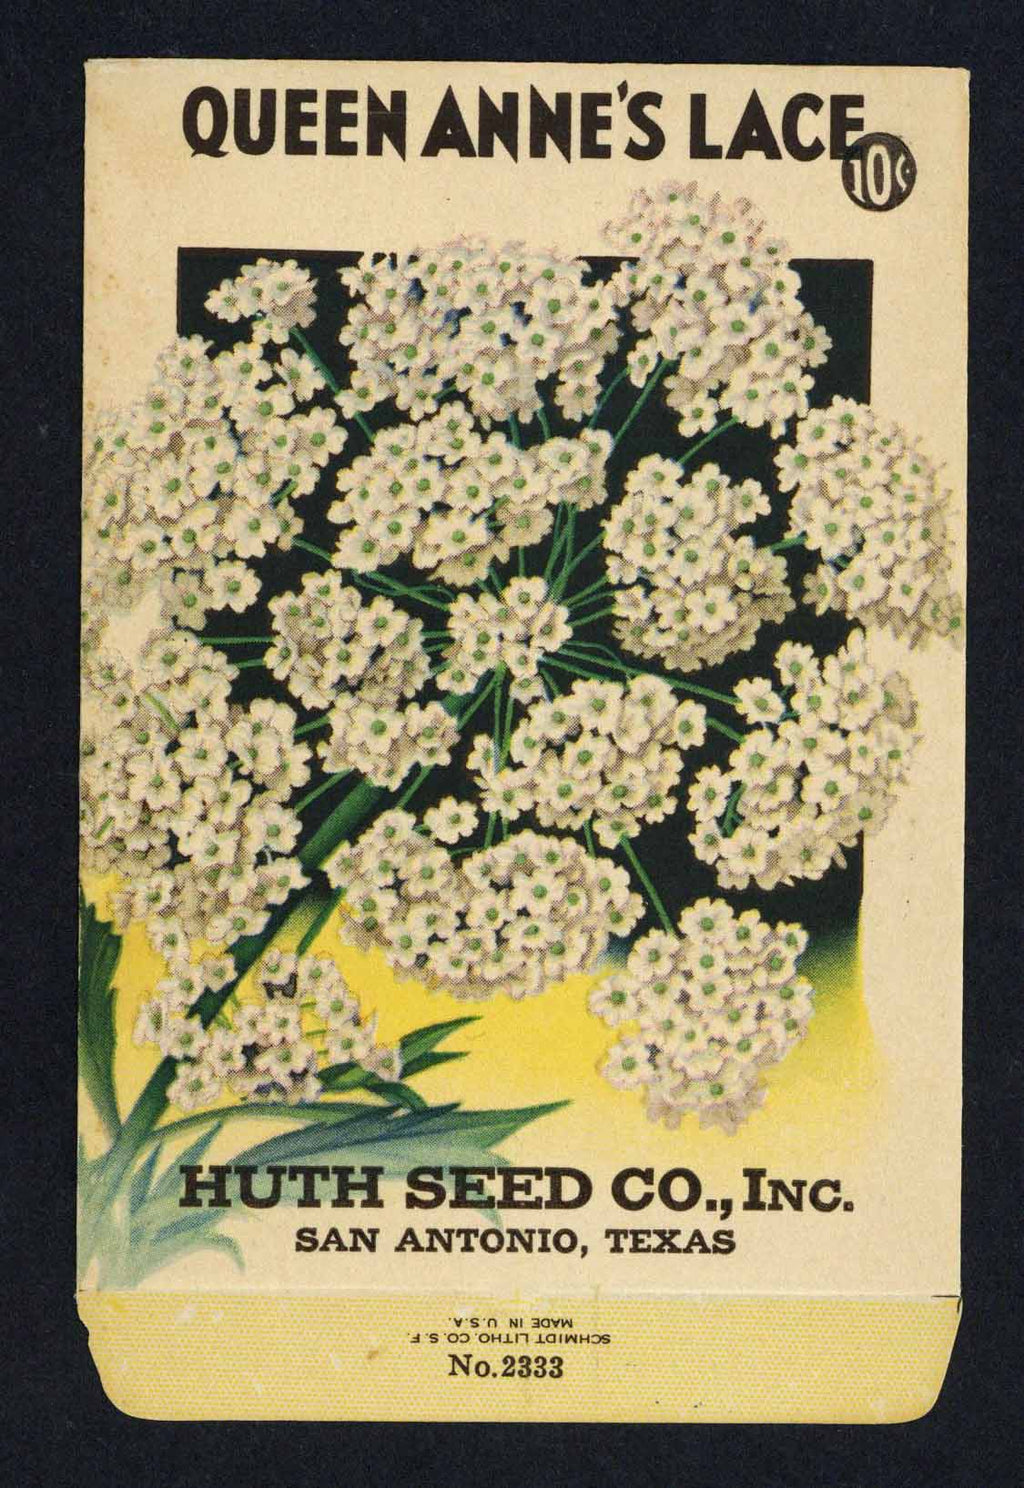 Queen Anne's Lace Vintage Huth Seed Co. Seed Packet